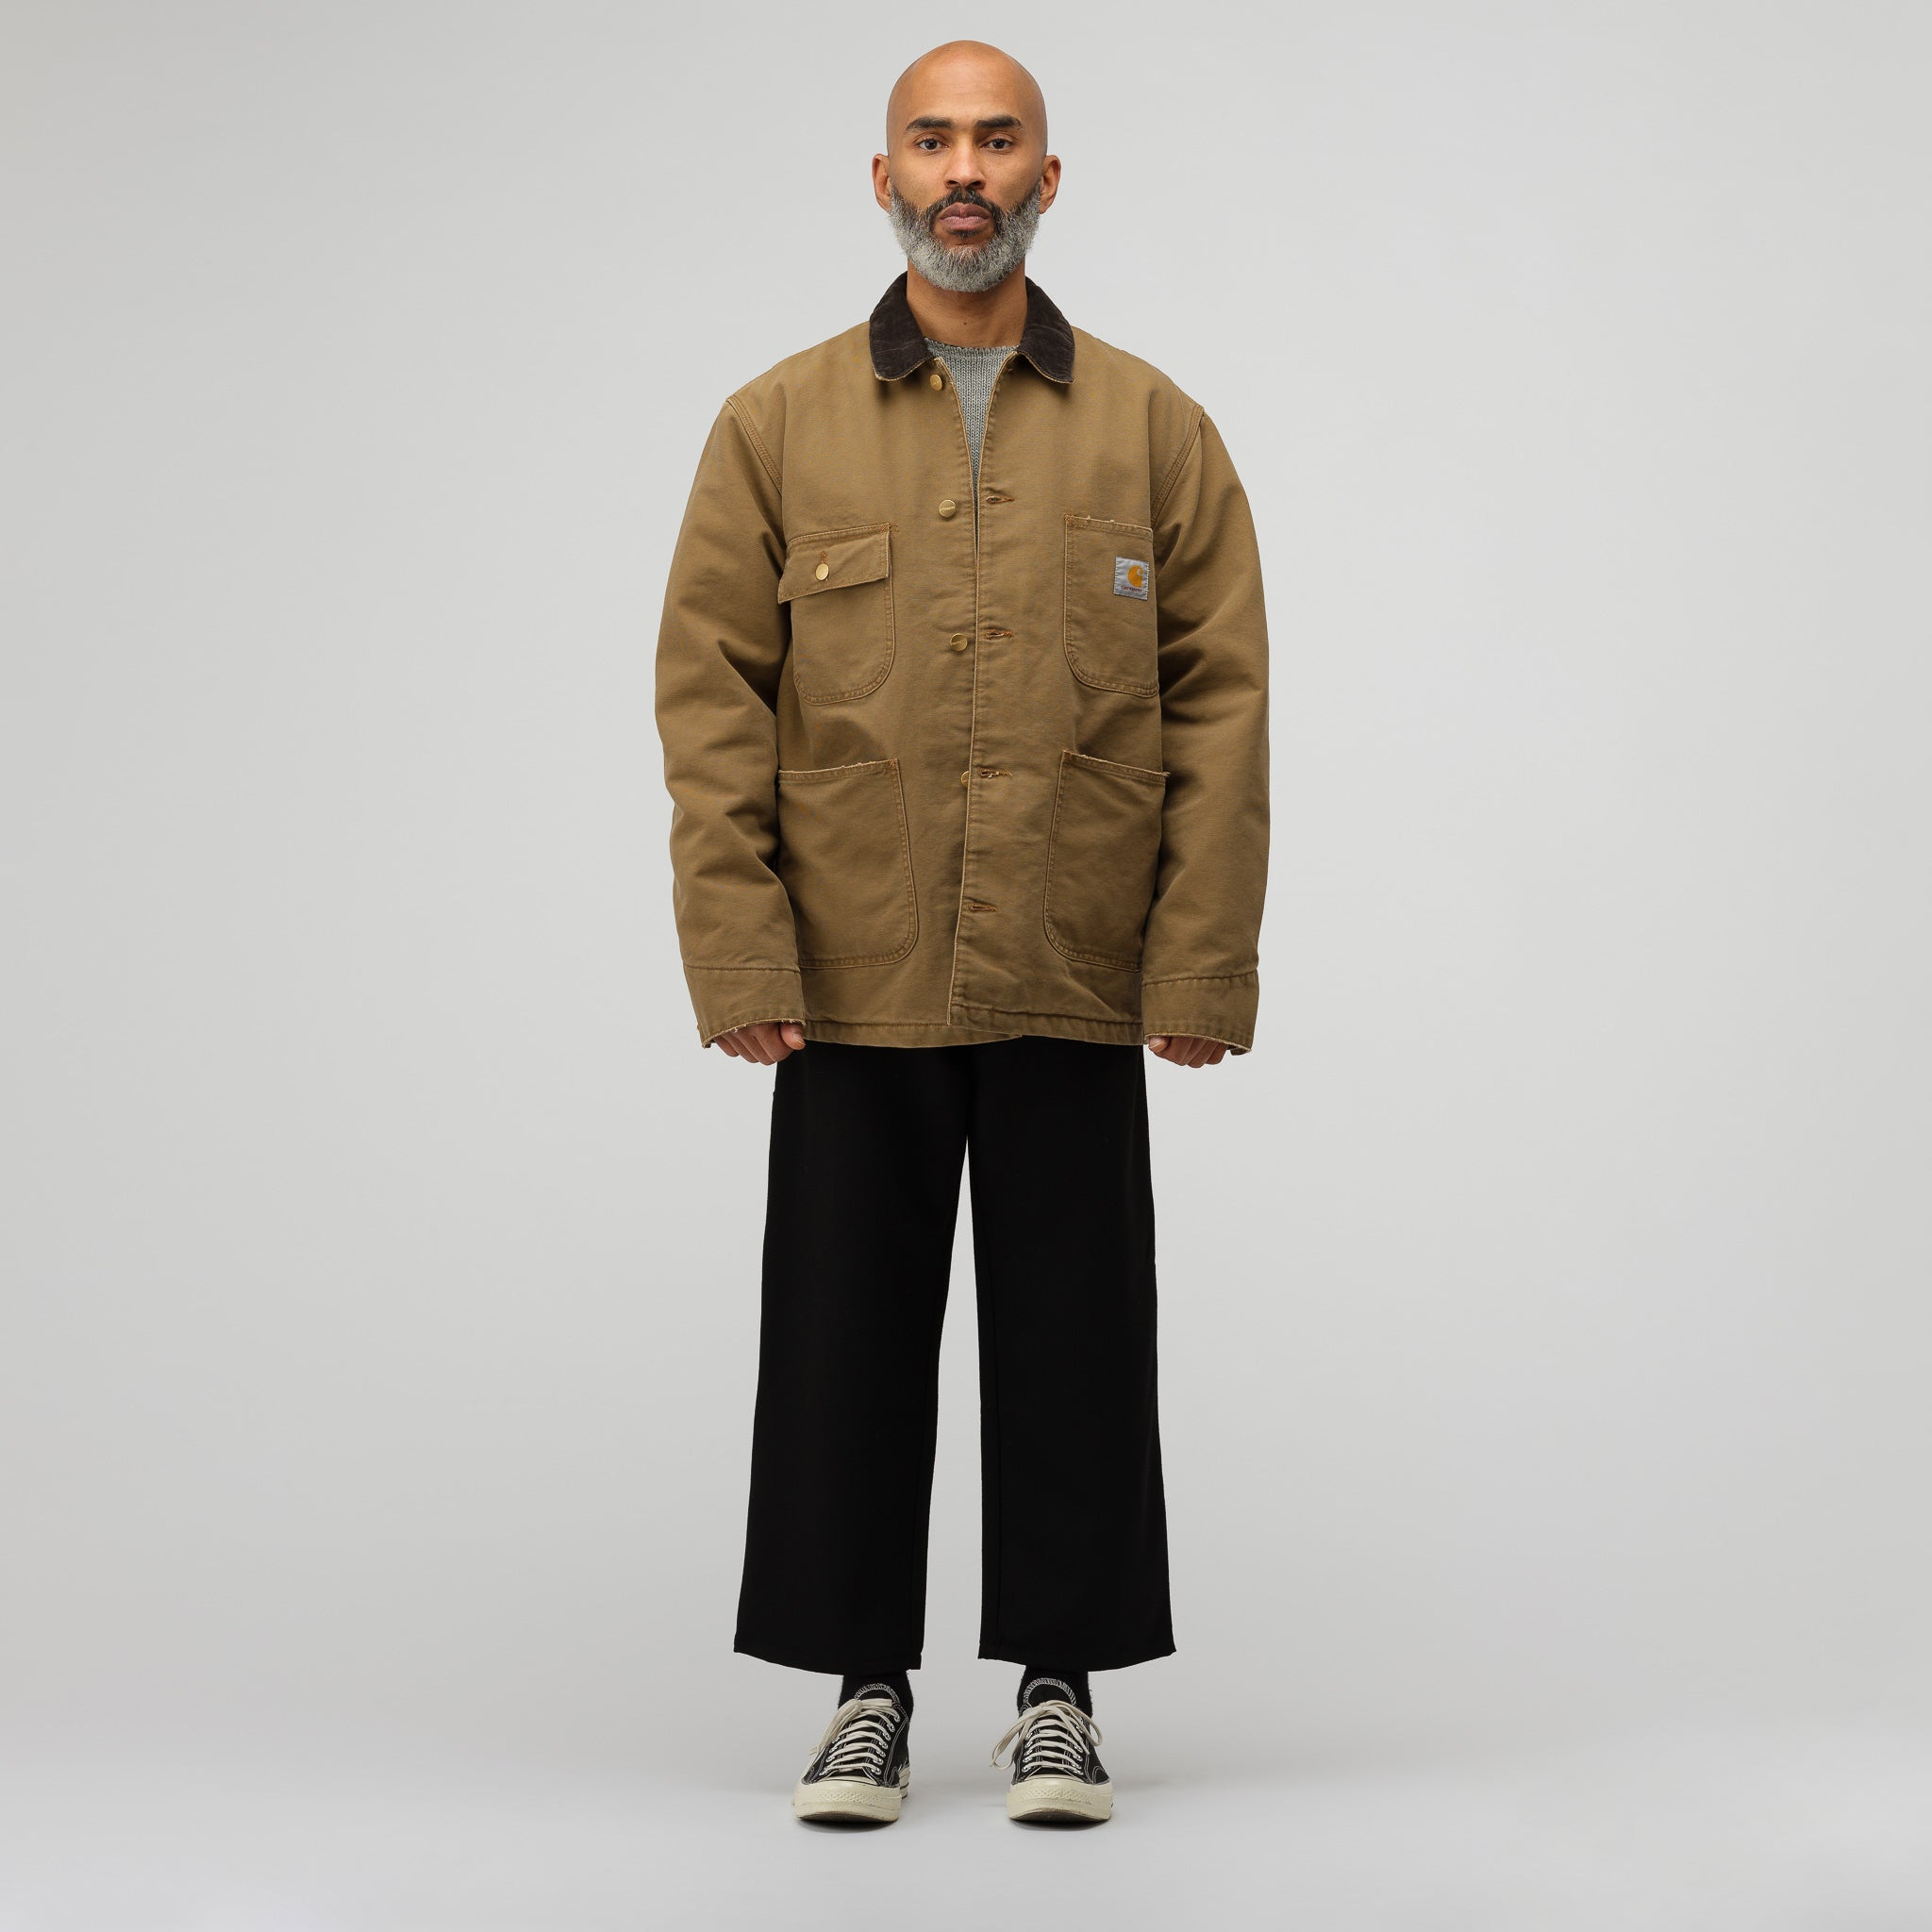 OG Chore Coat in Hamilton Brown